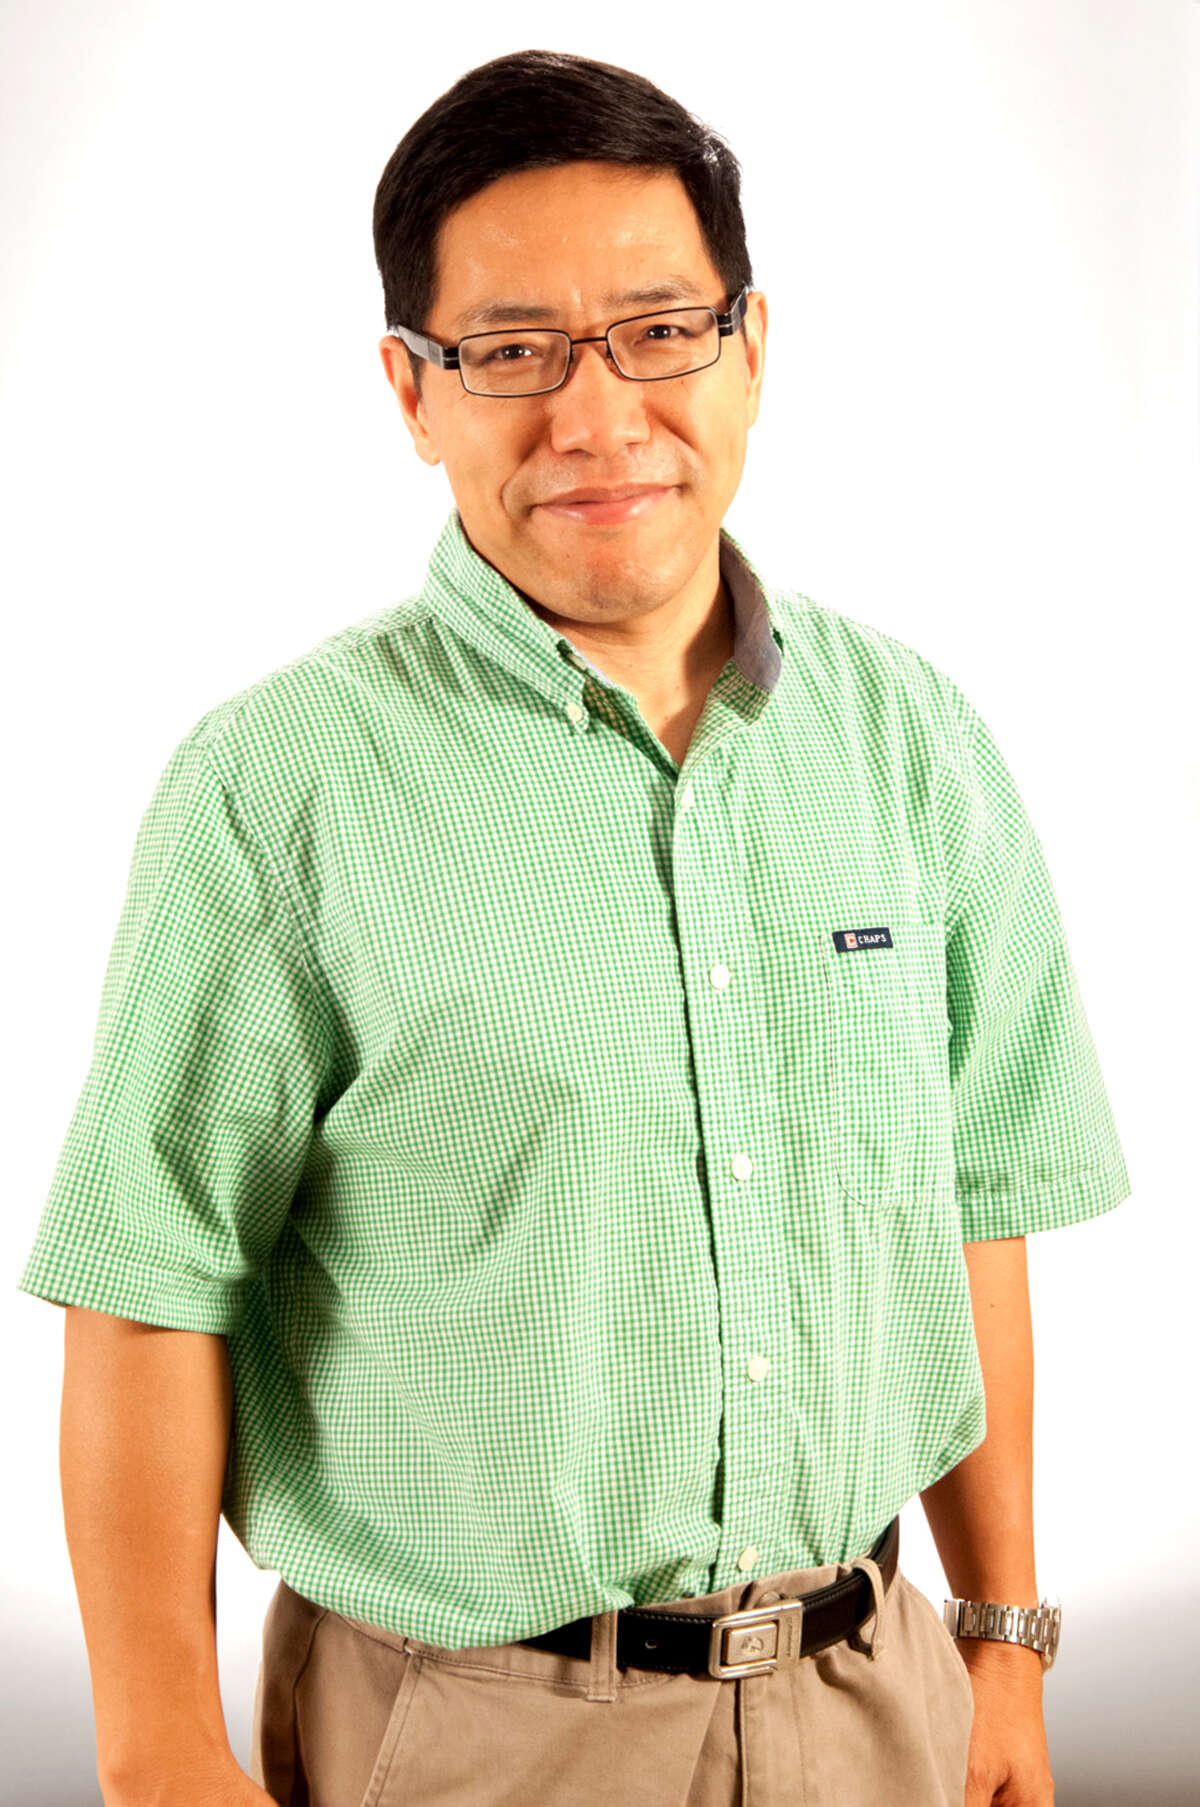 Aiguo Dai, a climate scientist at the University of Albany, headed an international research team that found parts of the tropical Pacific Ocean have been masking the surface temperature increases of ongoing climate change, and that the effect will reverse itself and release a new round of temperature spikes in the coming years. Photo courtesy of Mark Schmidt / University at Albany